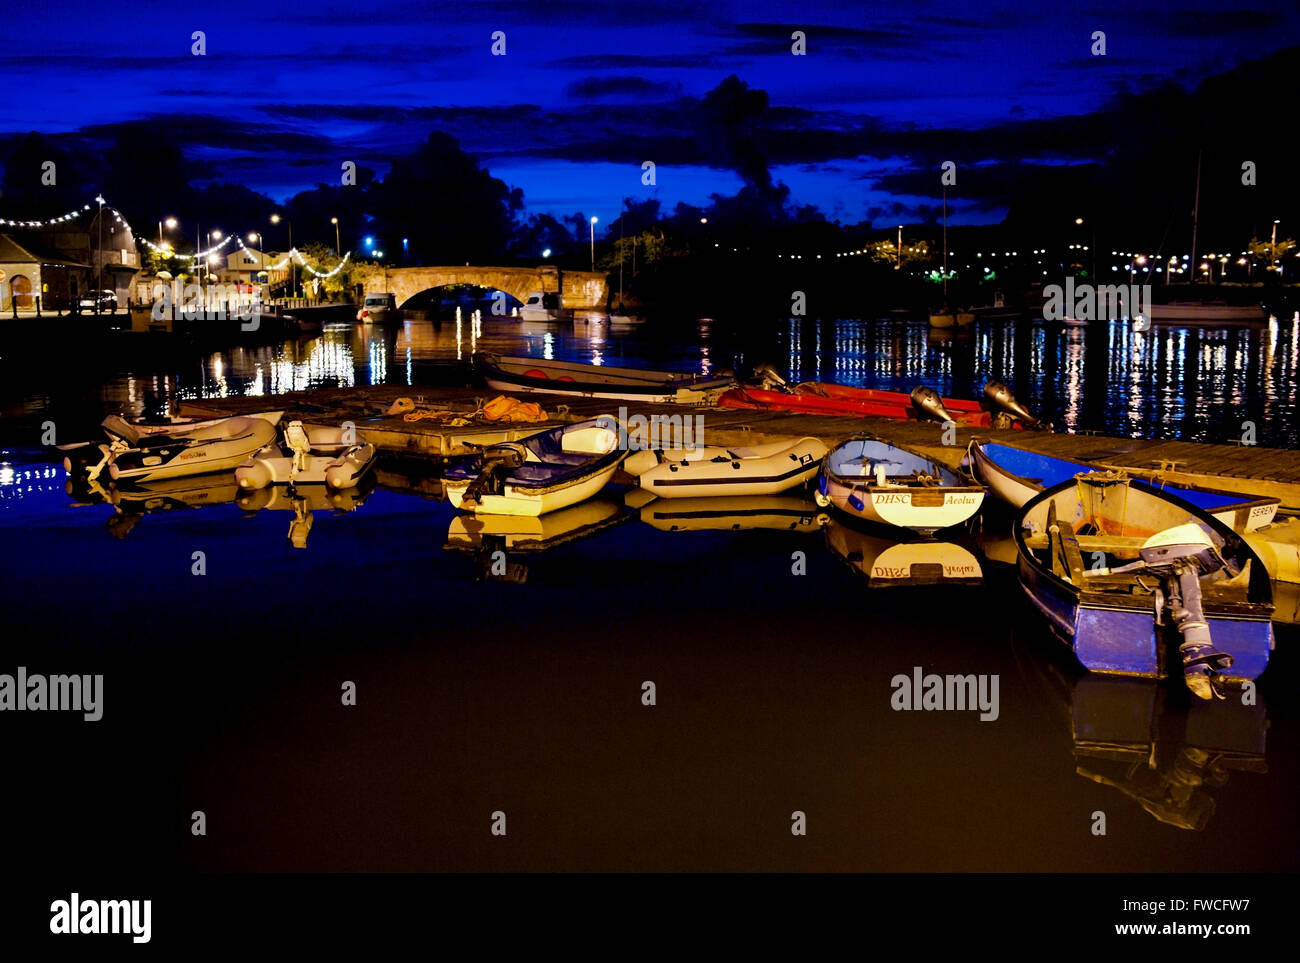 Boats moored at Dungarvan Harbour reflected in the calm water with the lights and blue evening sky over Dungarvan - Stock Image